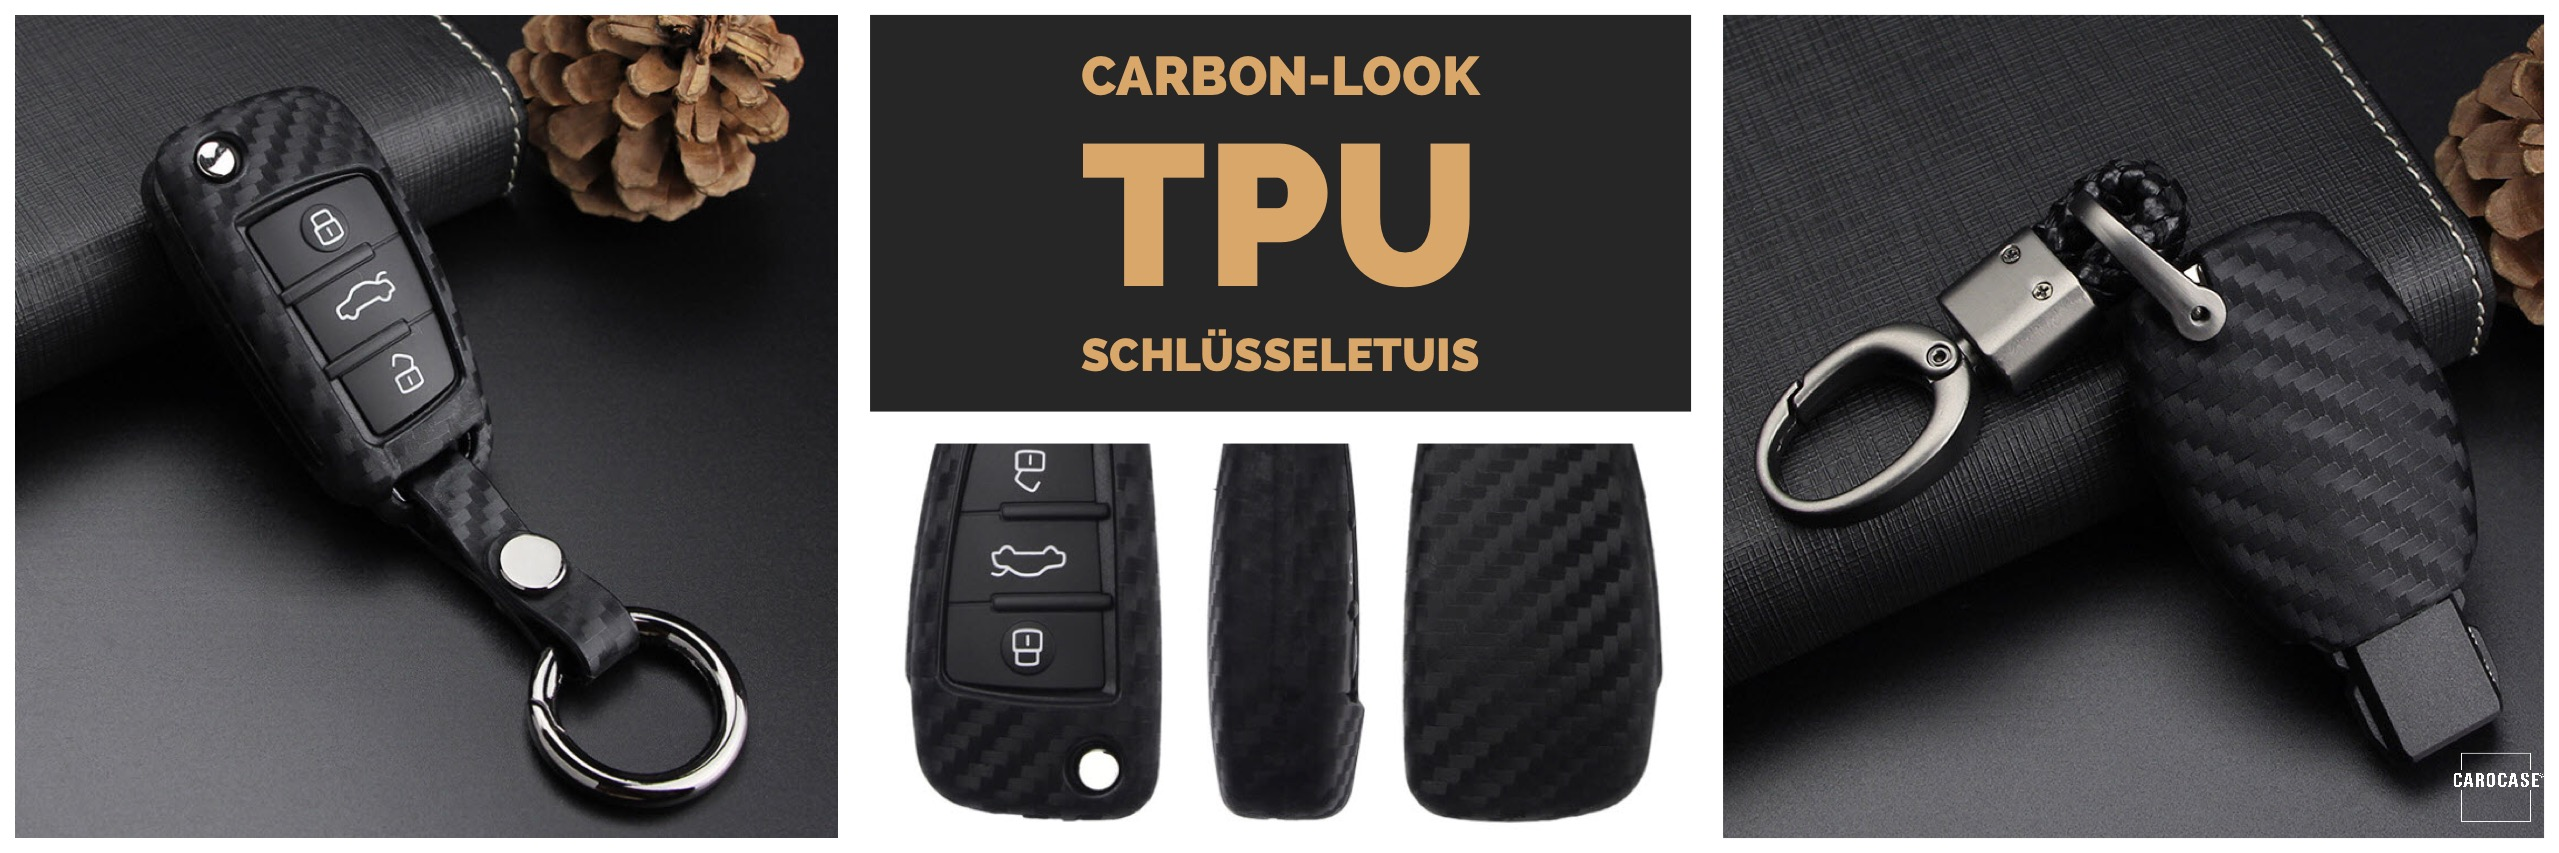 TPU-Caroblook-Case